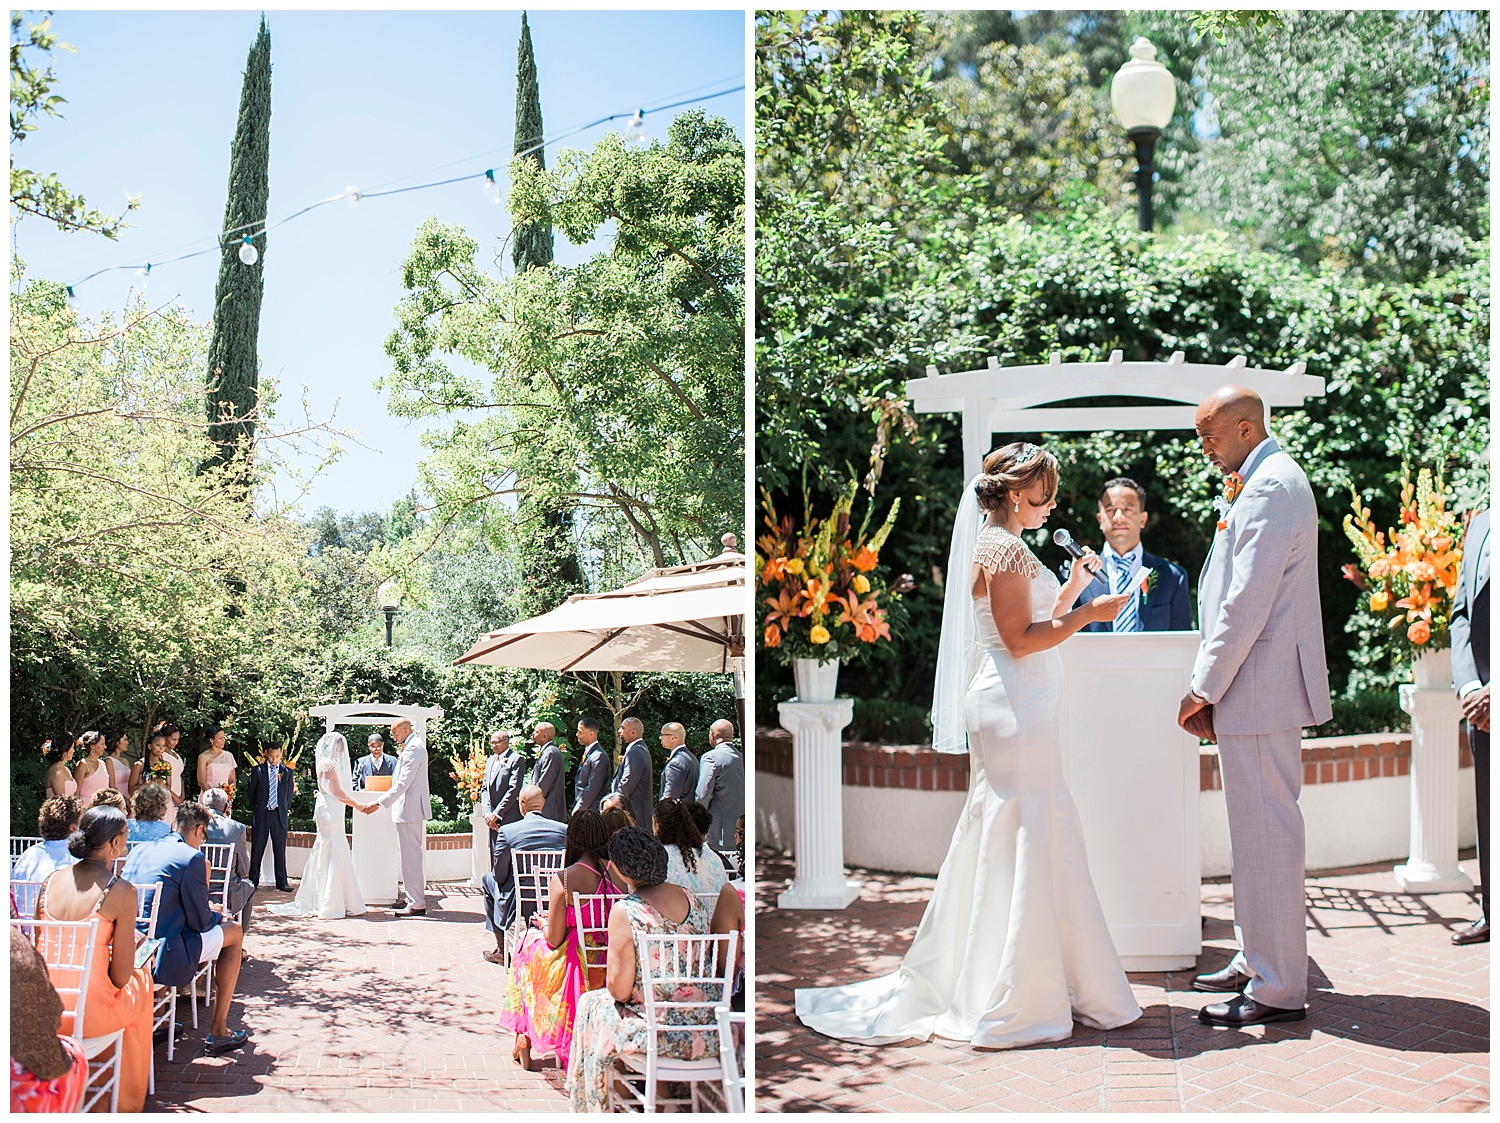 SACRAMENTO_WEDDING_VIZCAYA_PHOTOGRAPHY_SUNFLOWERS_NICOLEQUIROZ_11.jpg